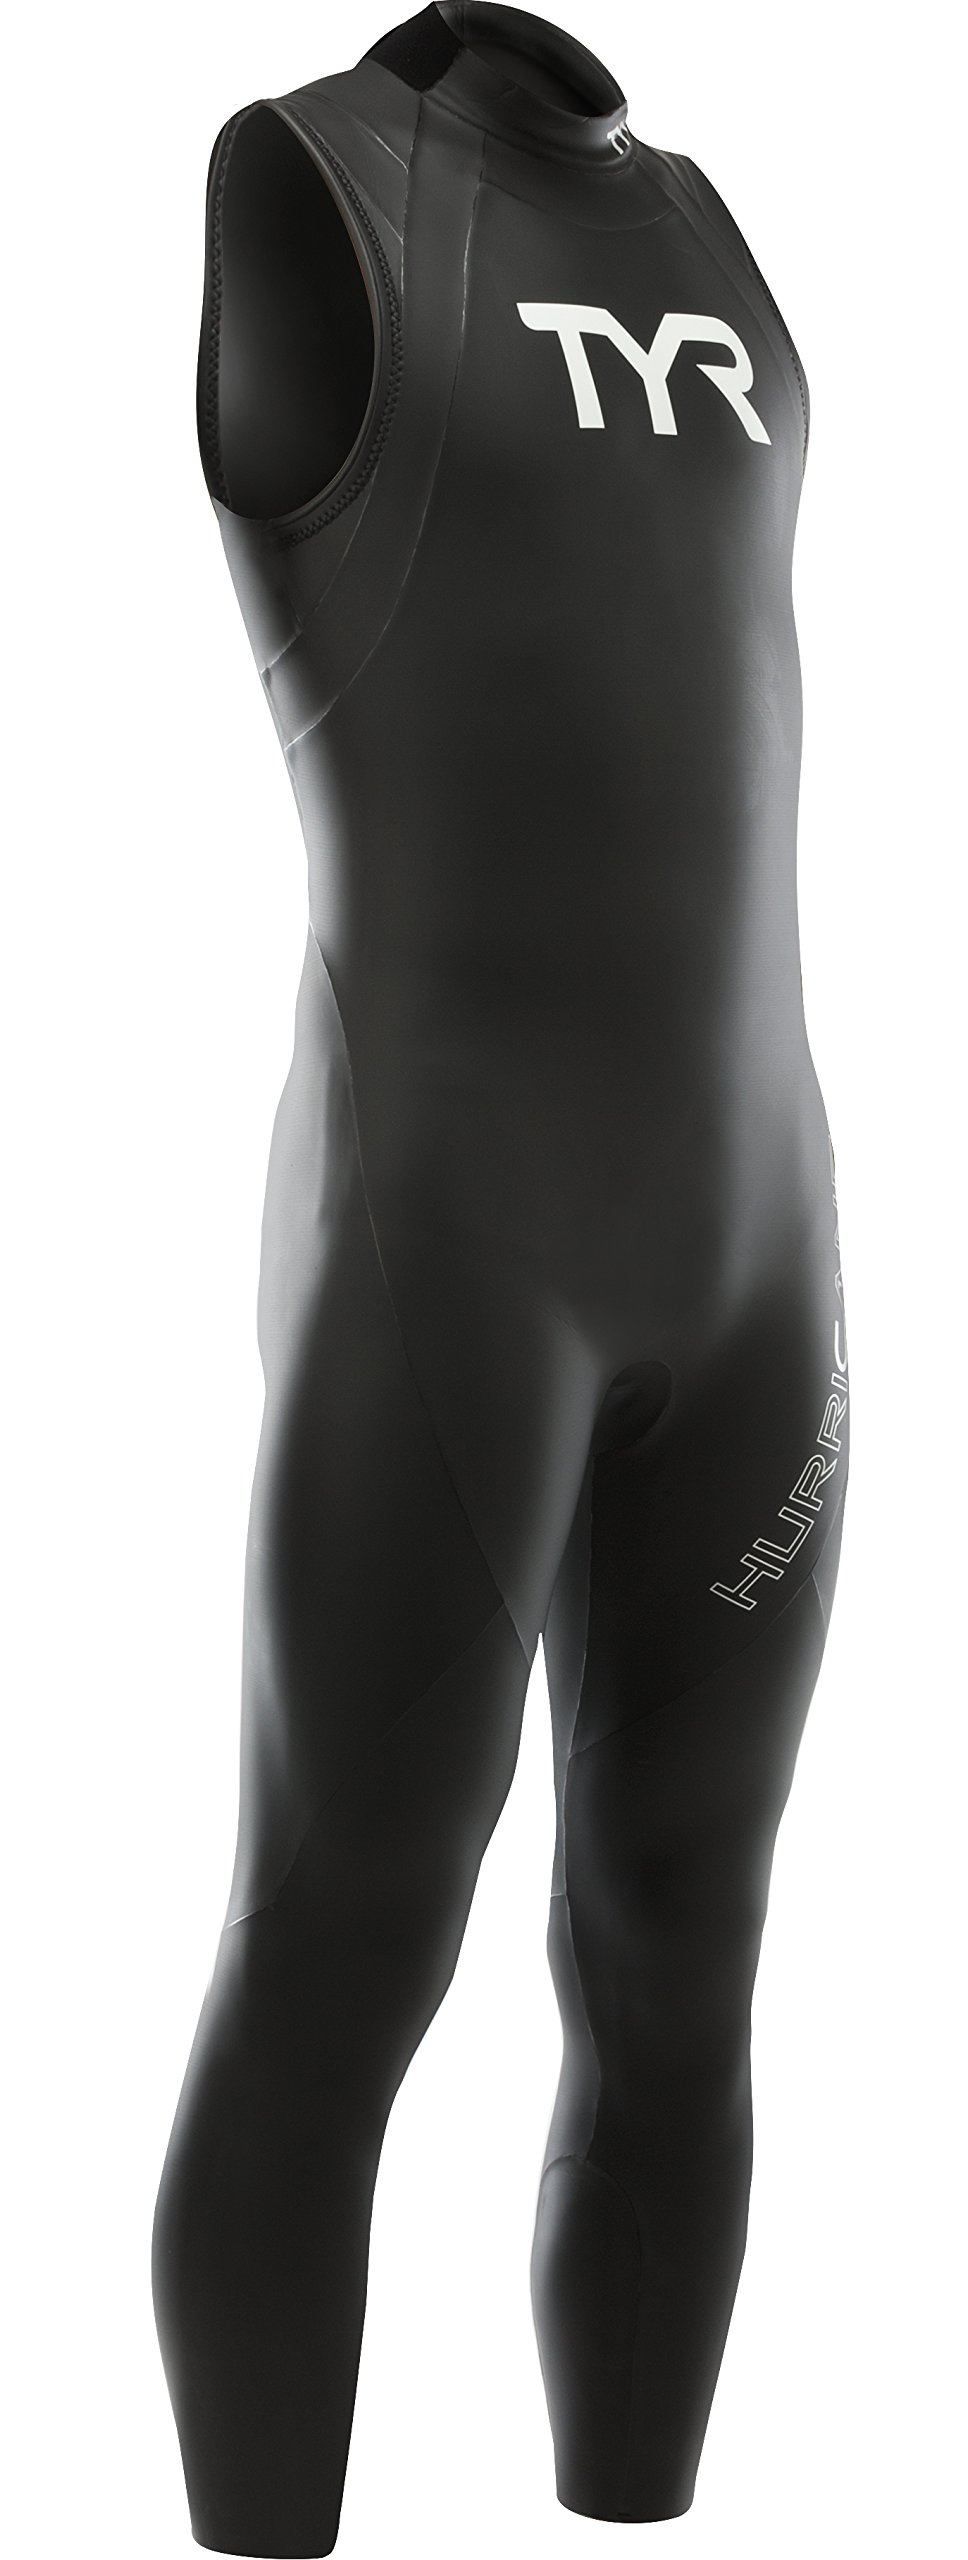 TYR Sport Men's Hurricane Sleeveless Wetsuit Category 1, Black/White, X-Large